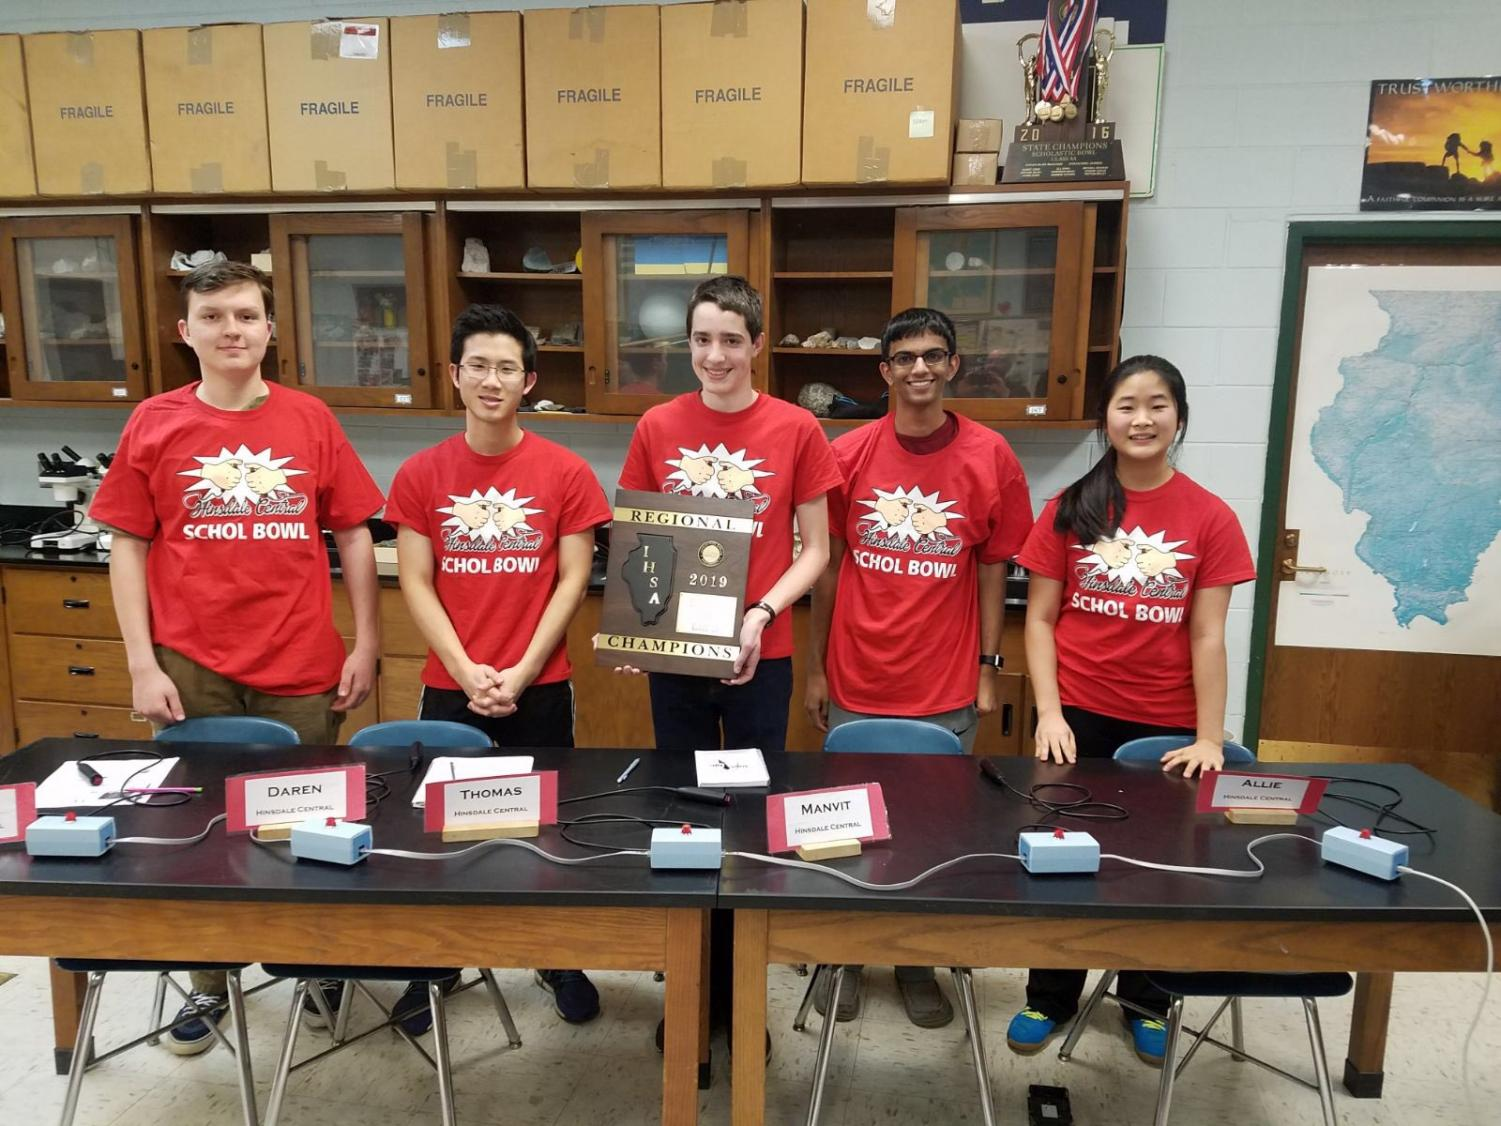 The Scholastic Bowl varsity team will attend Scholastic Bowl Nationals in Atlanta, Ga. on May 24 and 25.